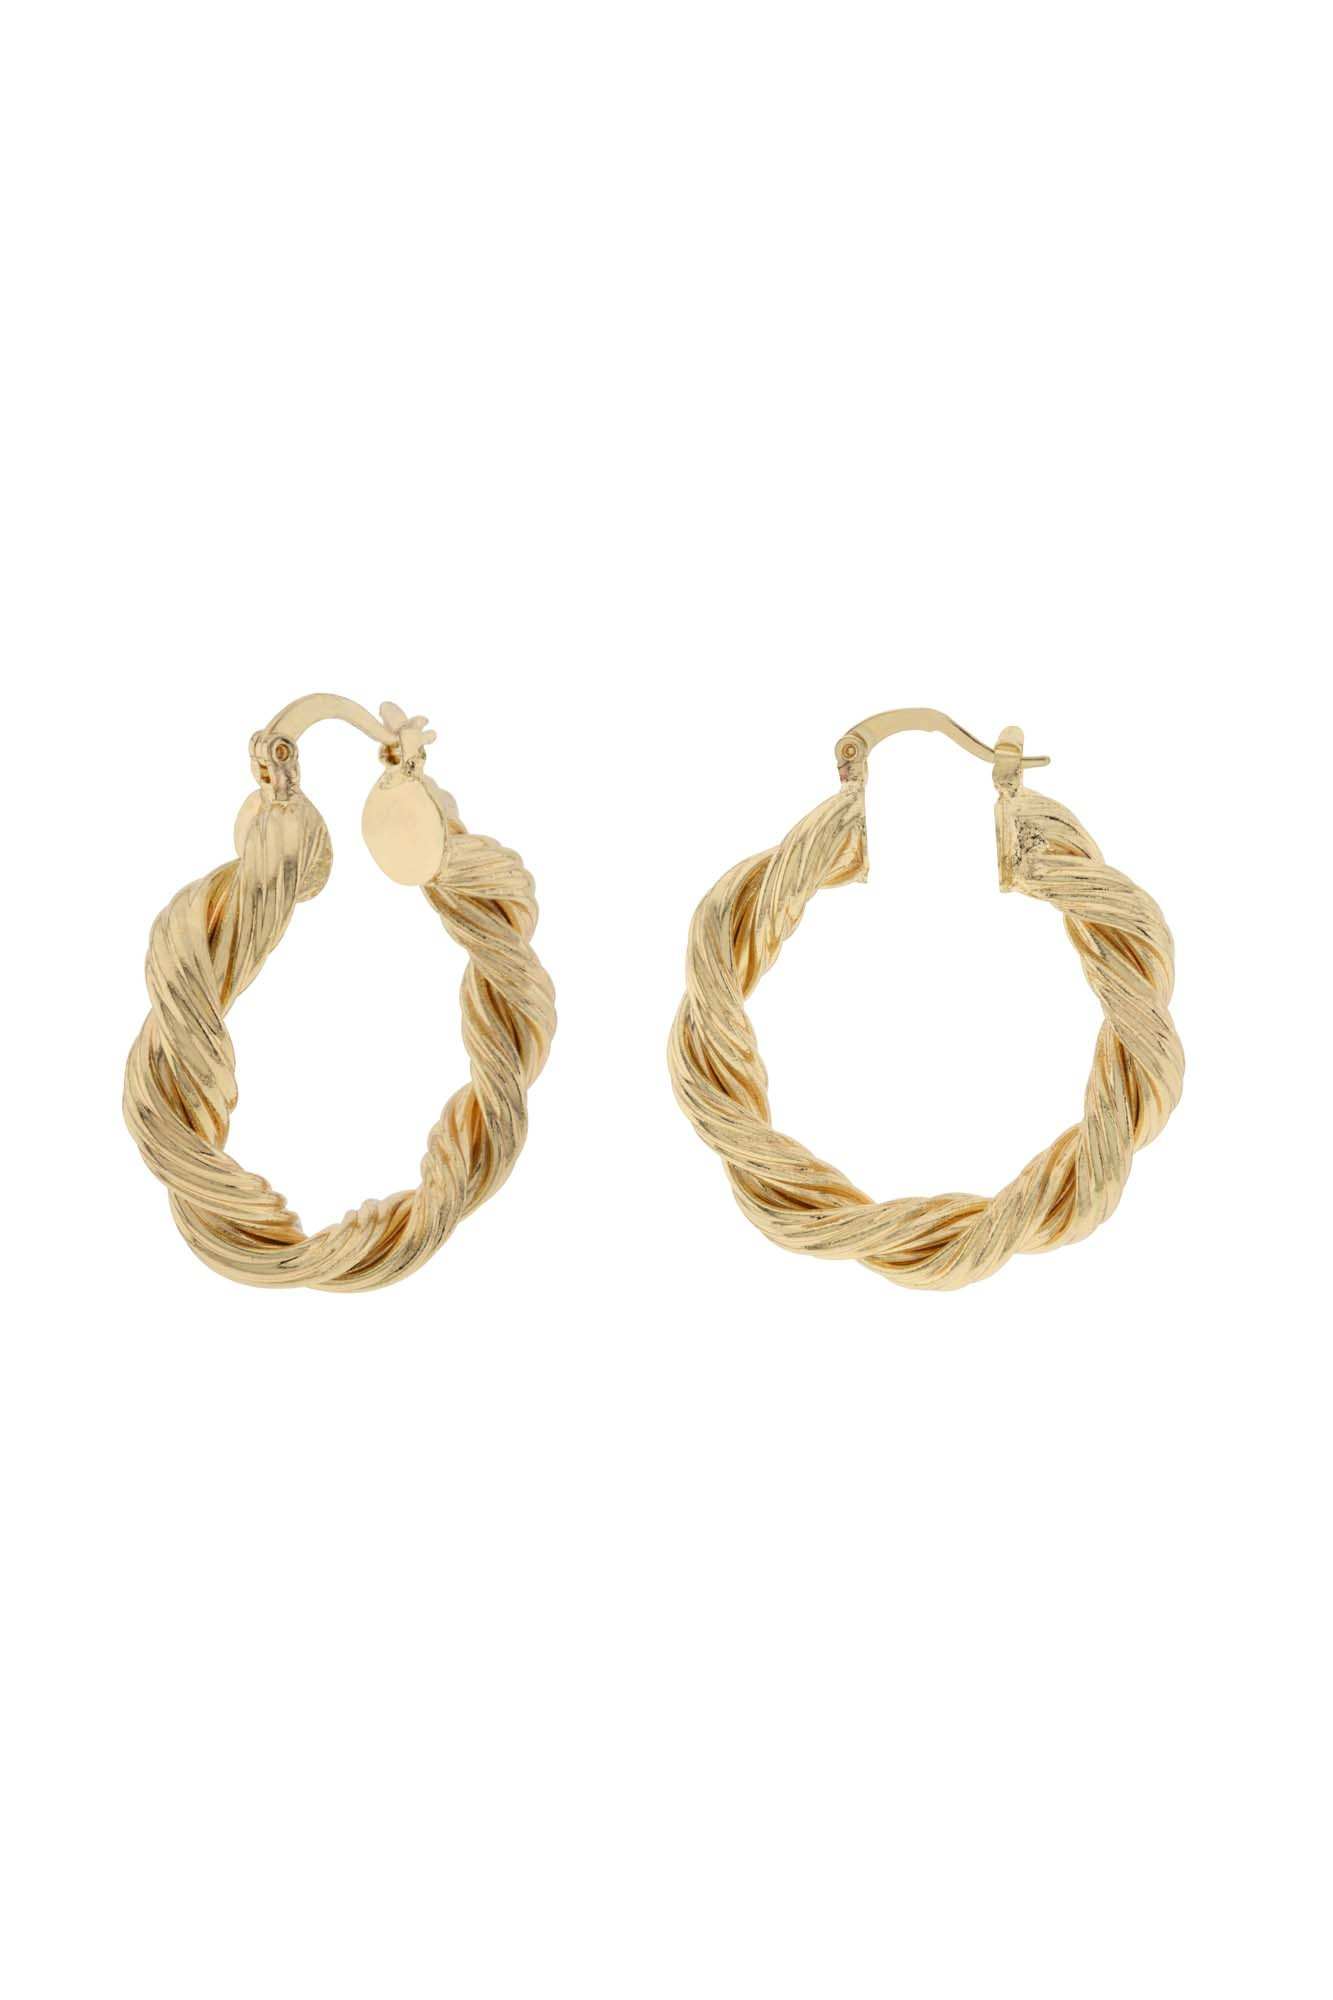 ARETE EARRINGS